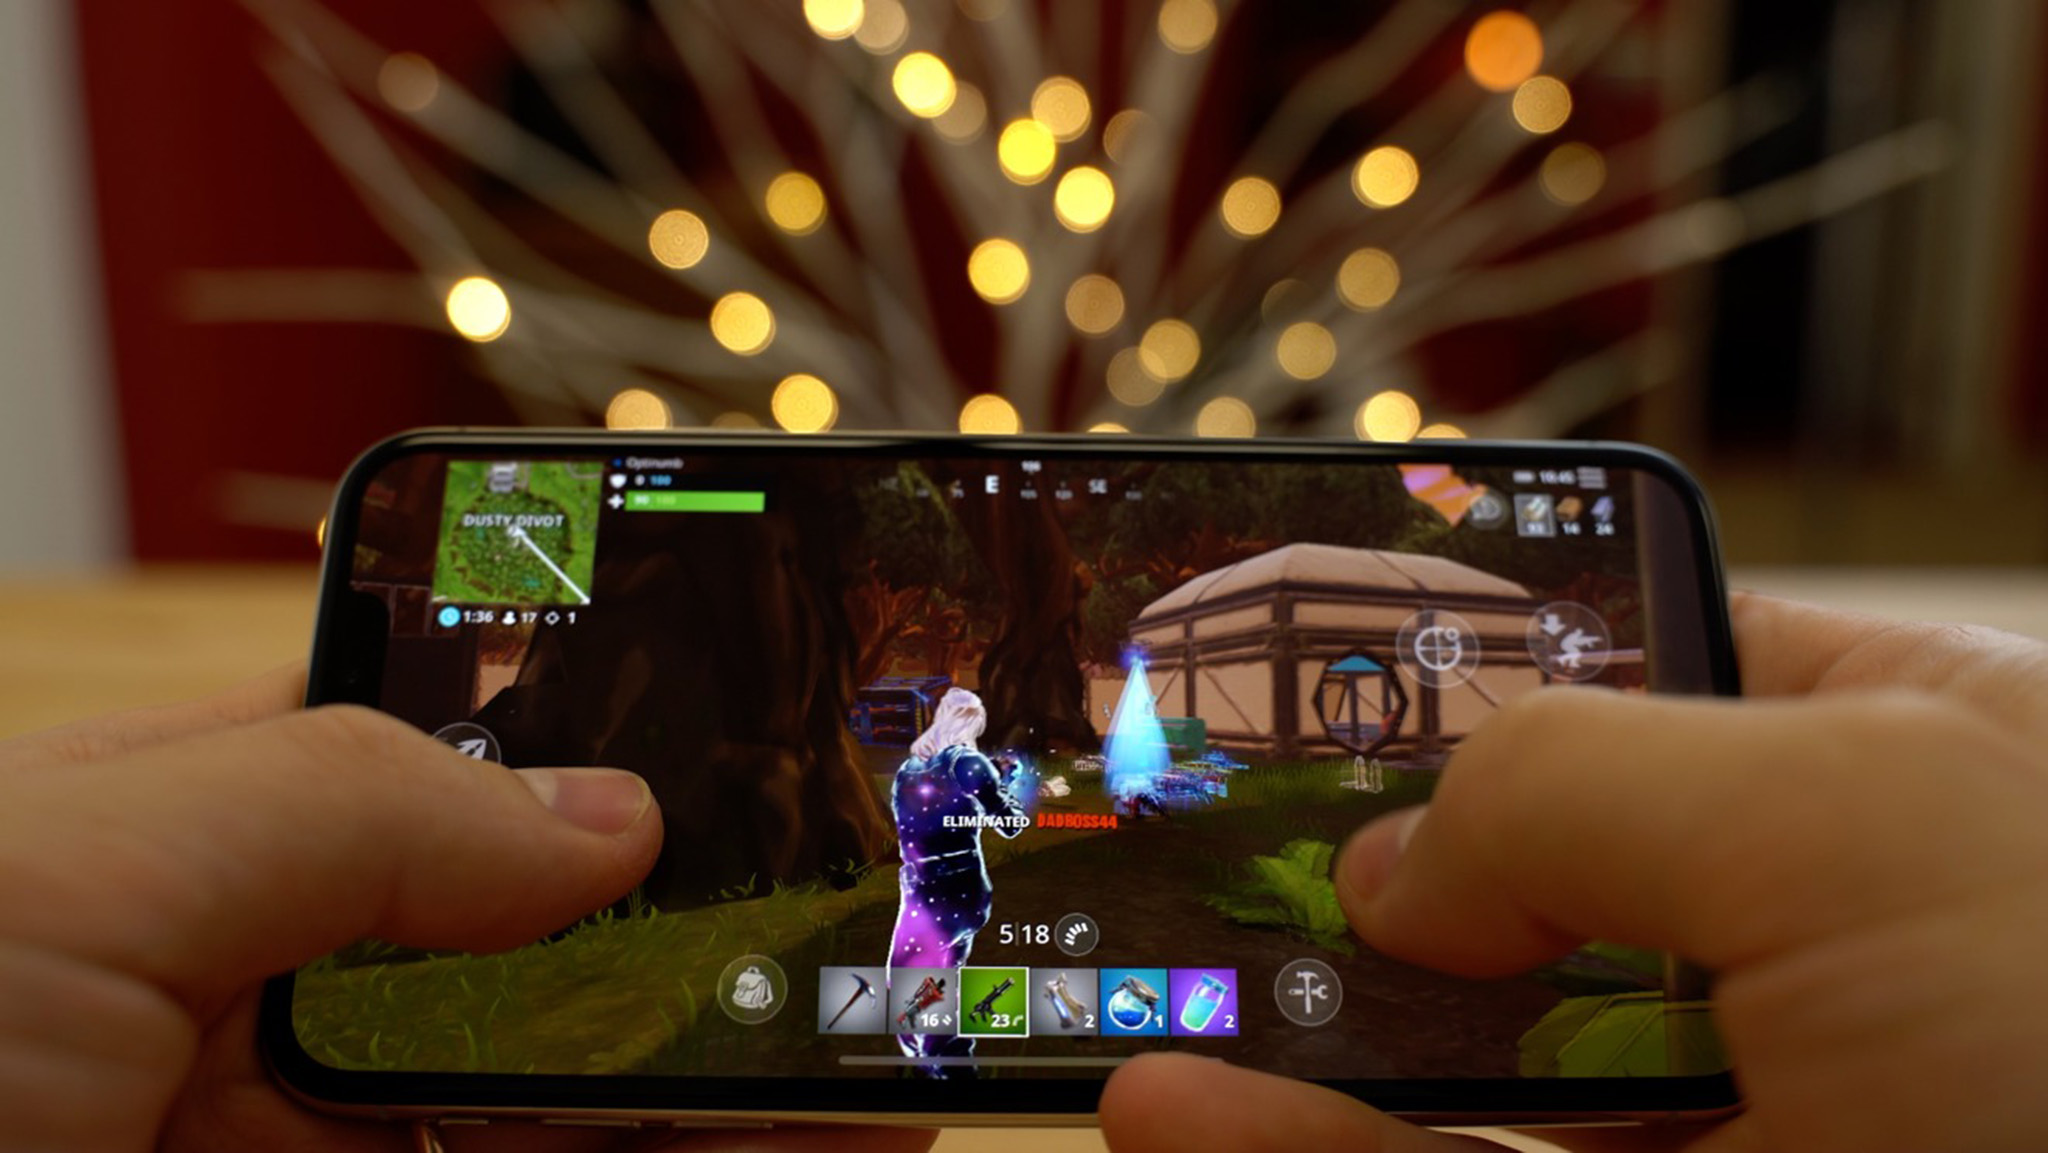 Fortnite fans who play the battle royale on iOS mobile devices are set to miss Season 4.